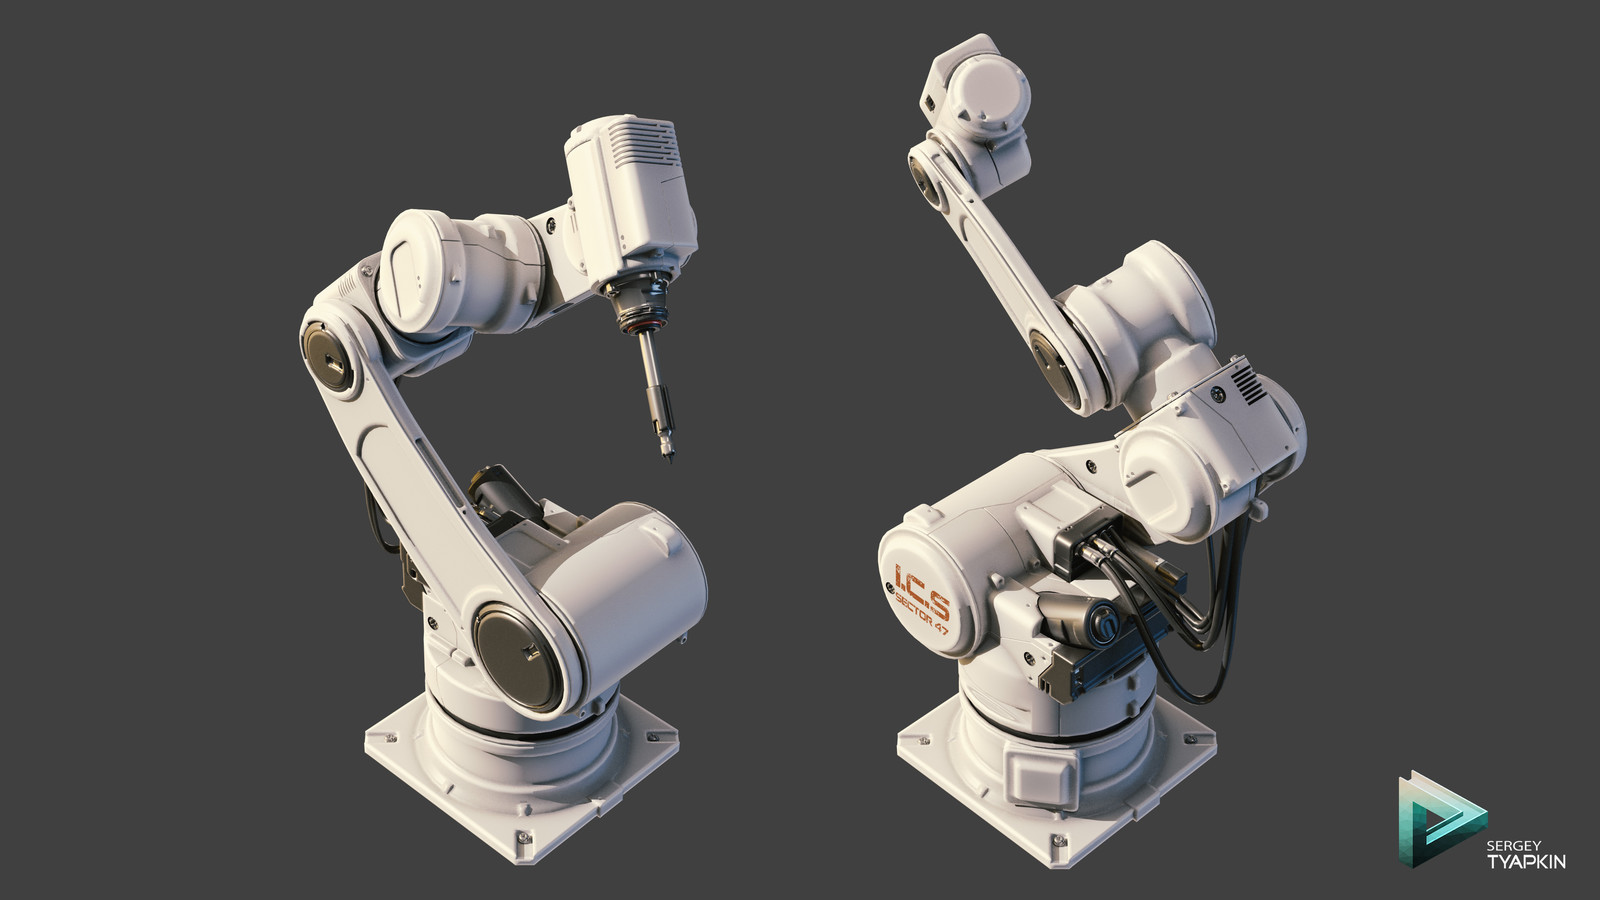 Day 9. Robotic arm